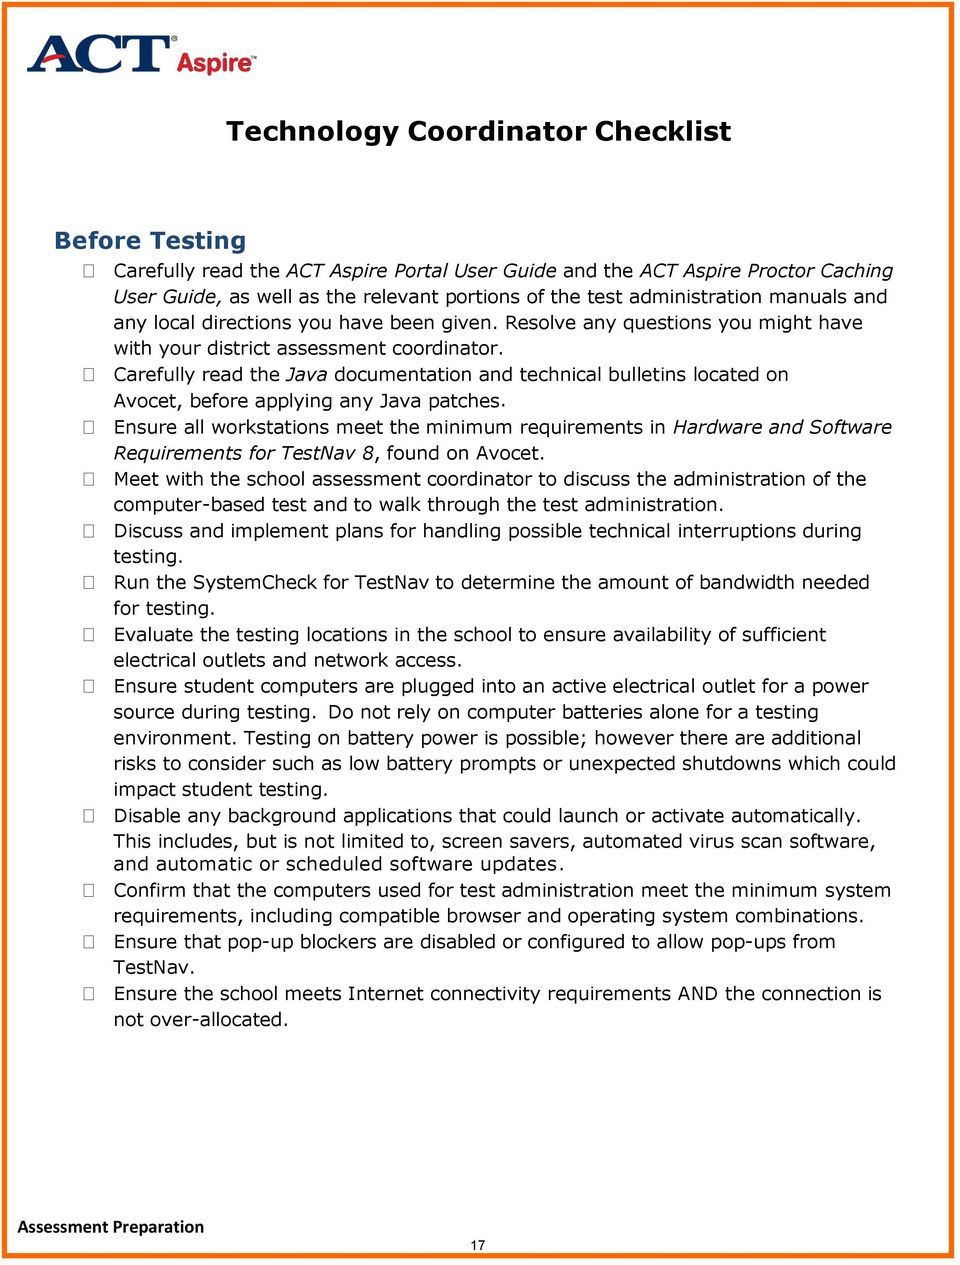 Carefully read the Java documentation and technical bulletins located on Avocet, before applying any Java patches.